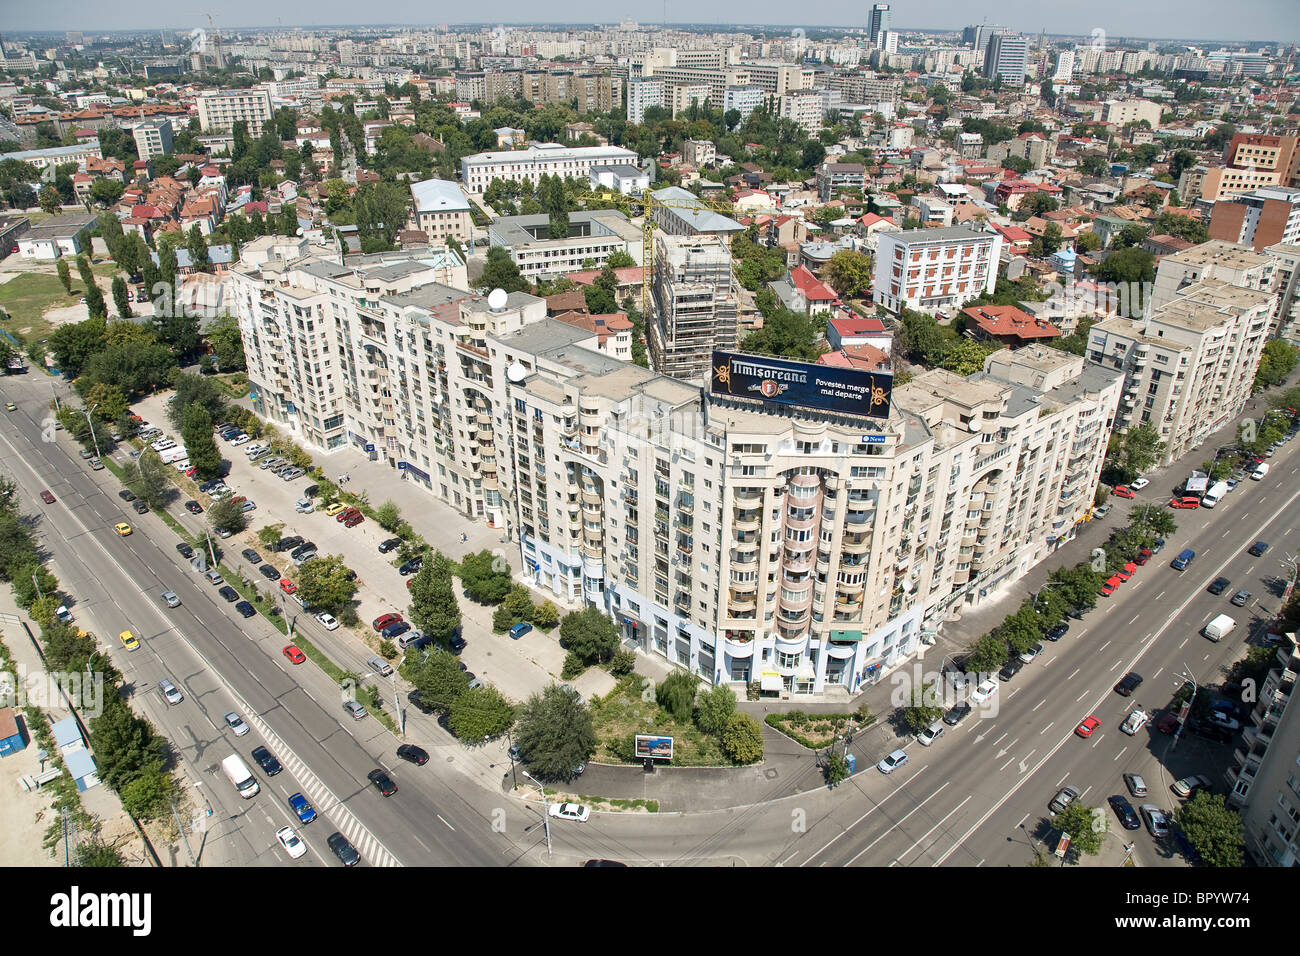 Aerial photograph of the city of Bucharest in Romania - Stock Image